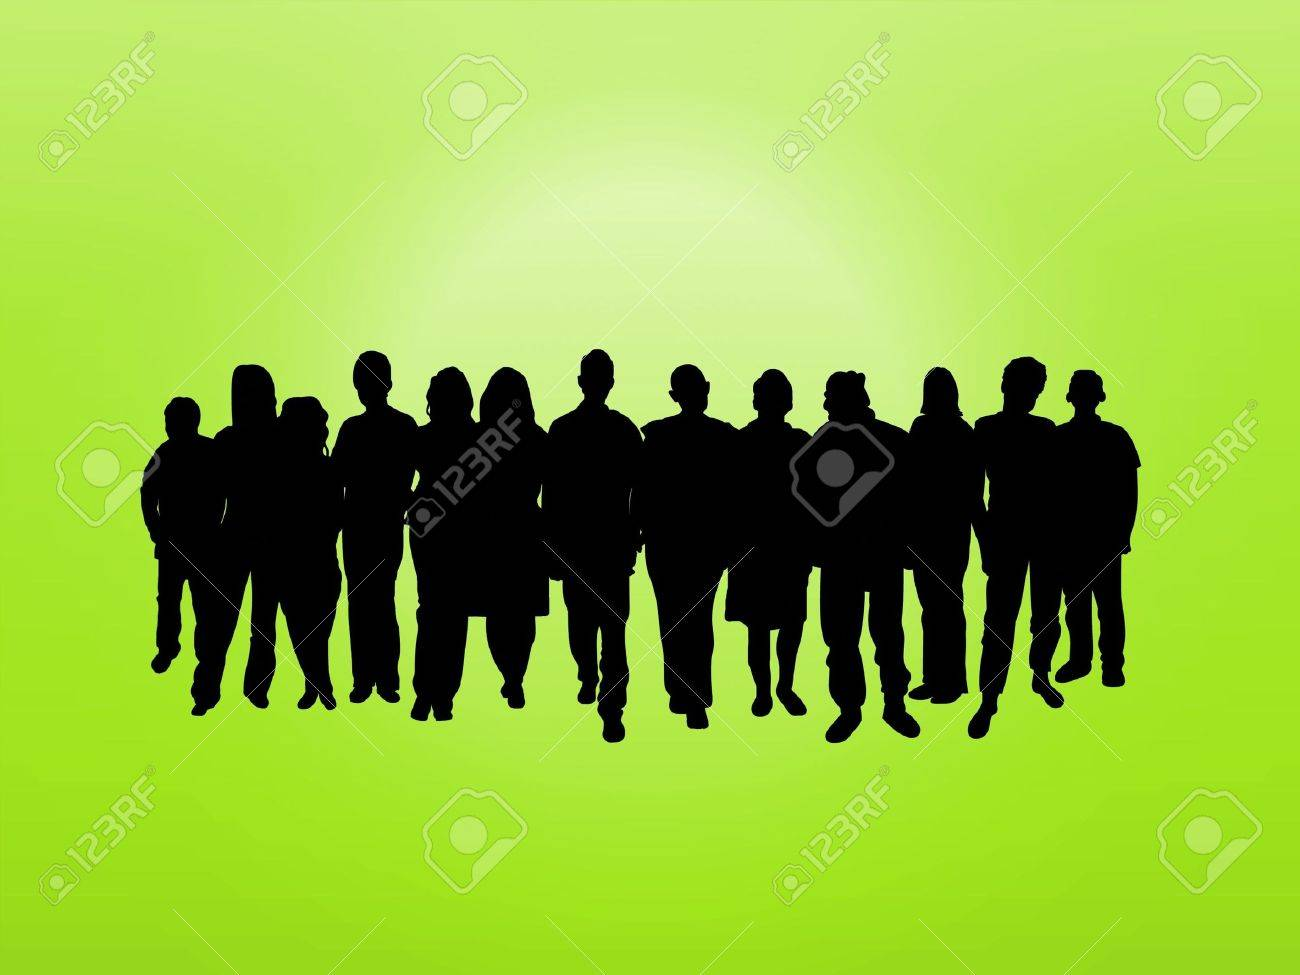 Illustrated crowd of people over a green background Stock Photo - 6894758